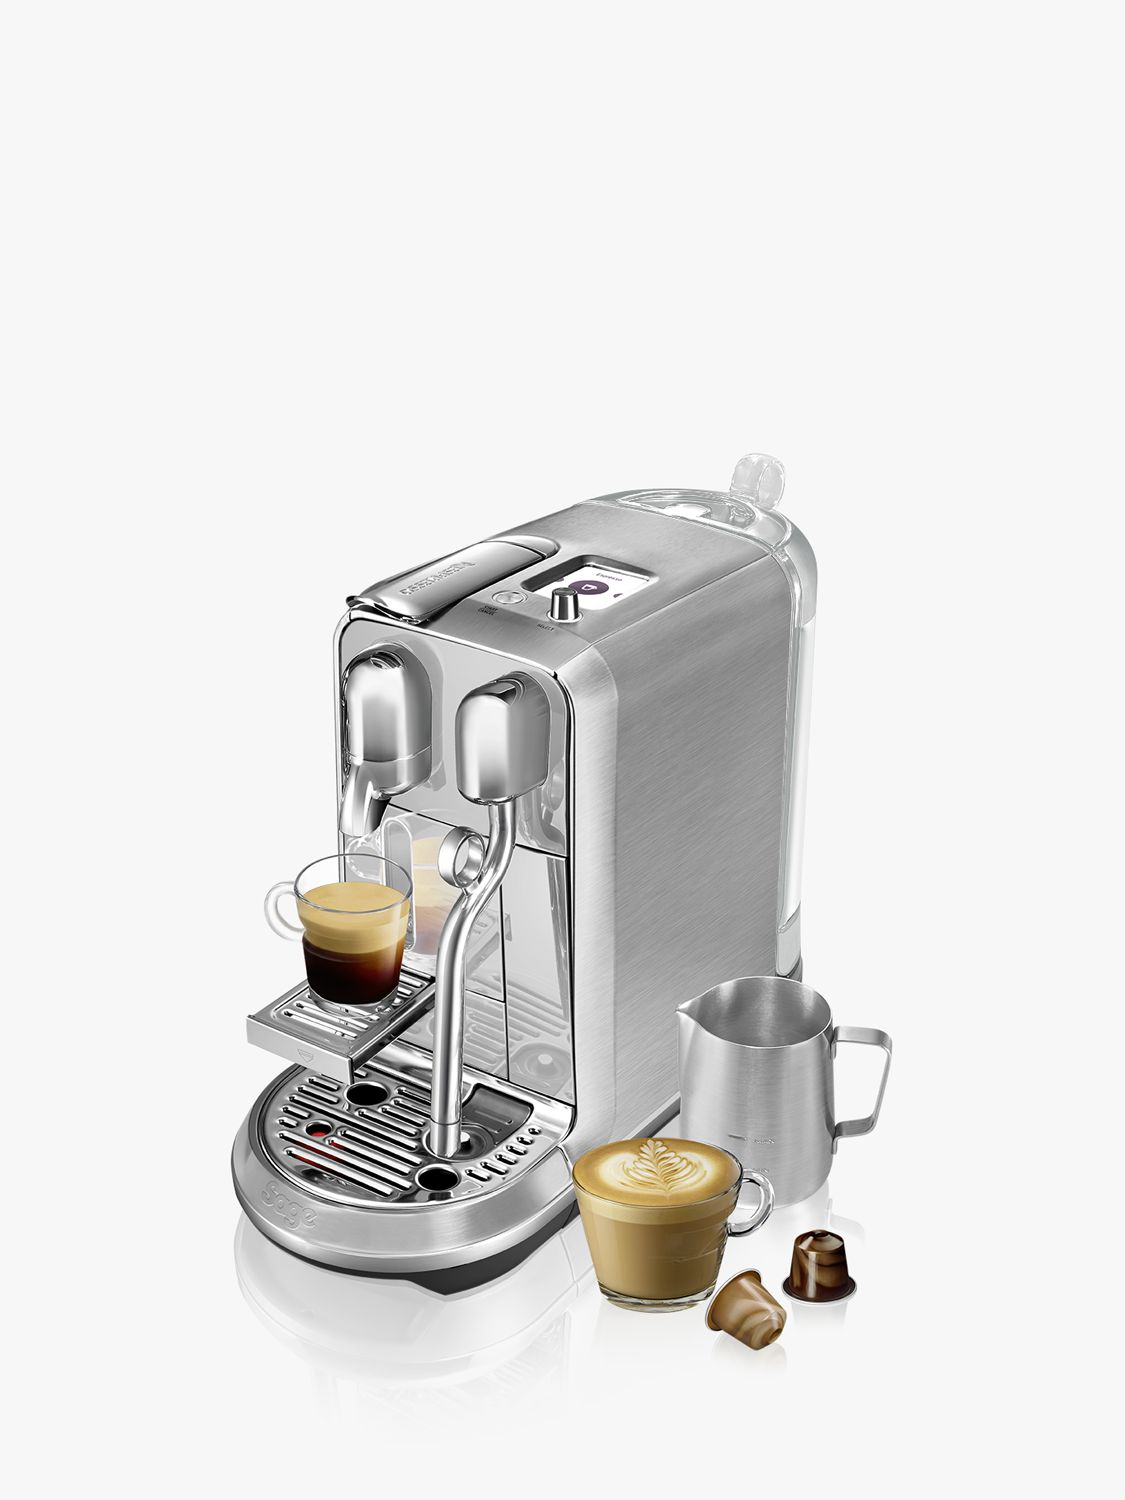 Italian Coffee Maker John Lewis : Buy Nespresso Creatista Plus Coffee Machine by Sage John Lewis